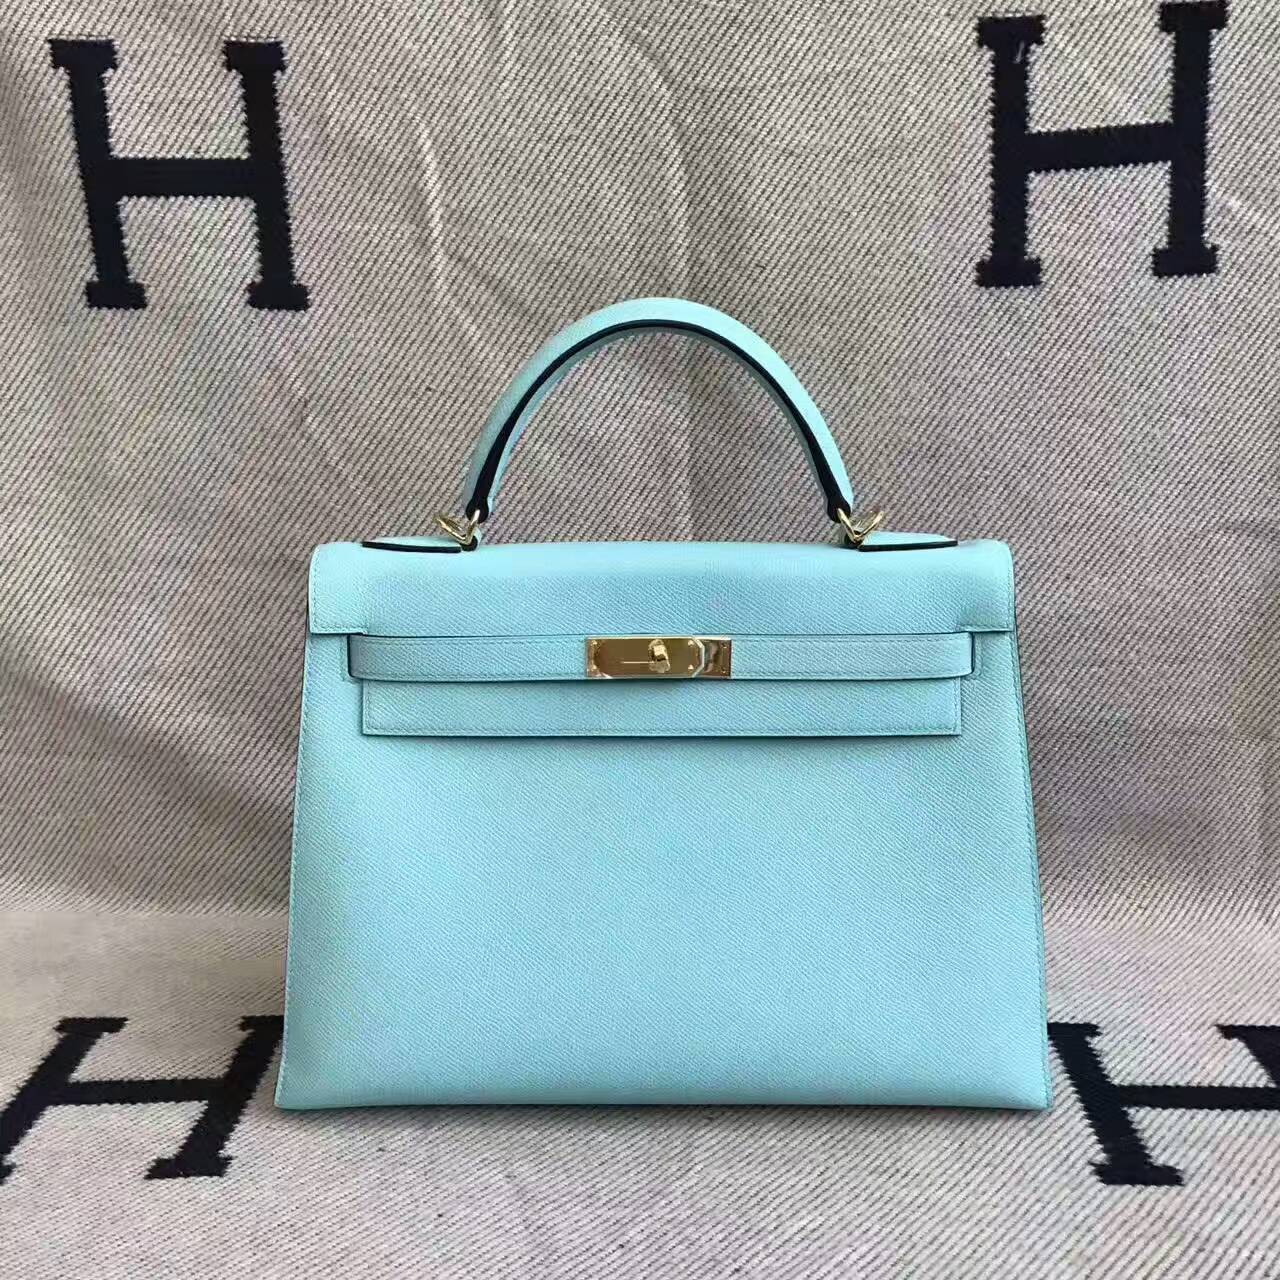 Discount Hermes 3P Blue Attol Epsom Leather Sellier Kelly Bag 32CM